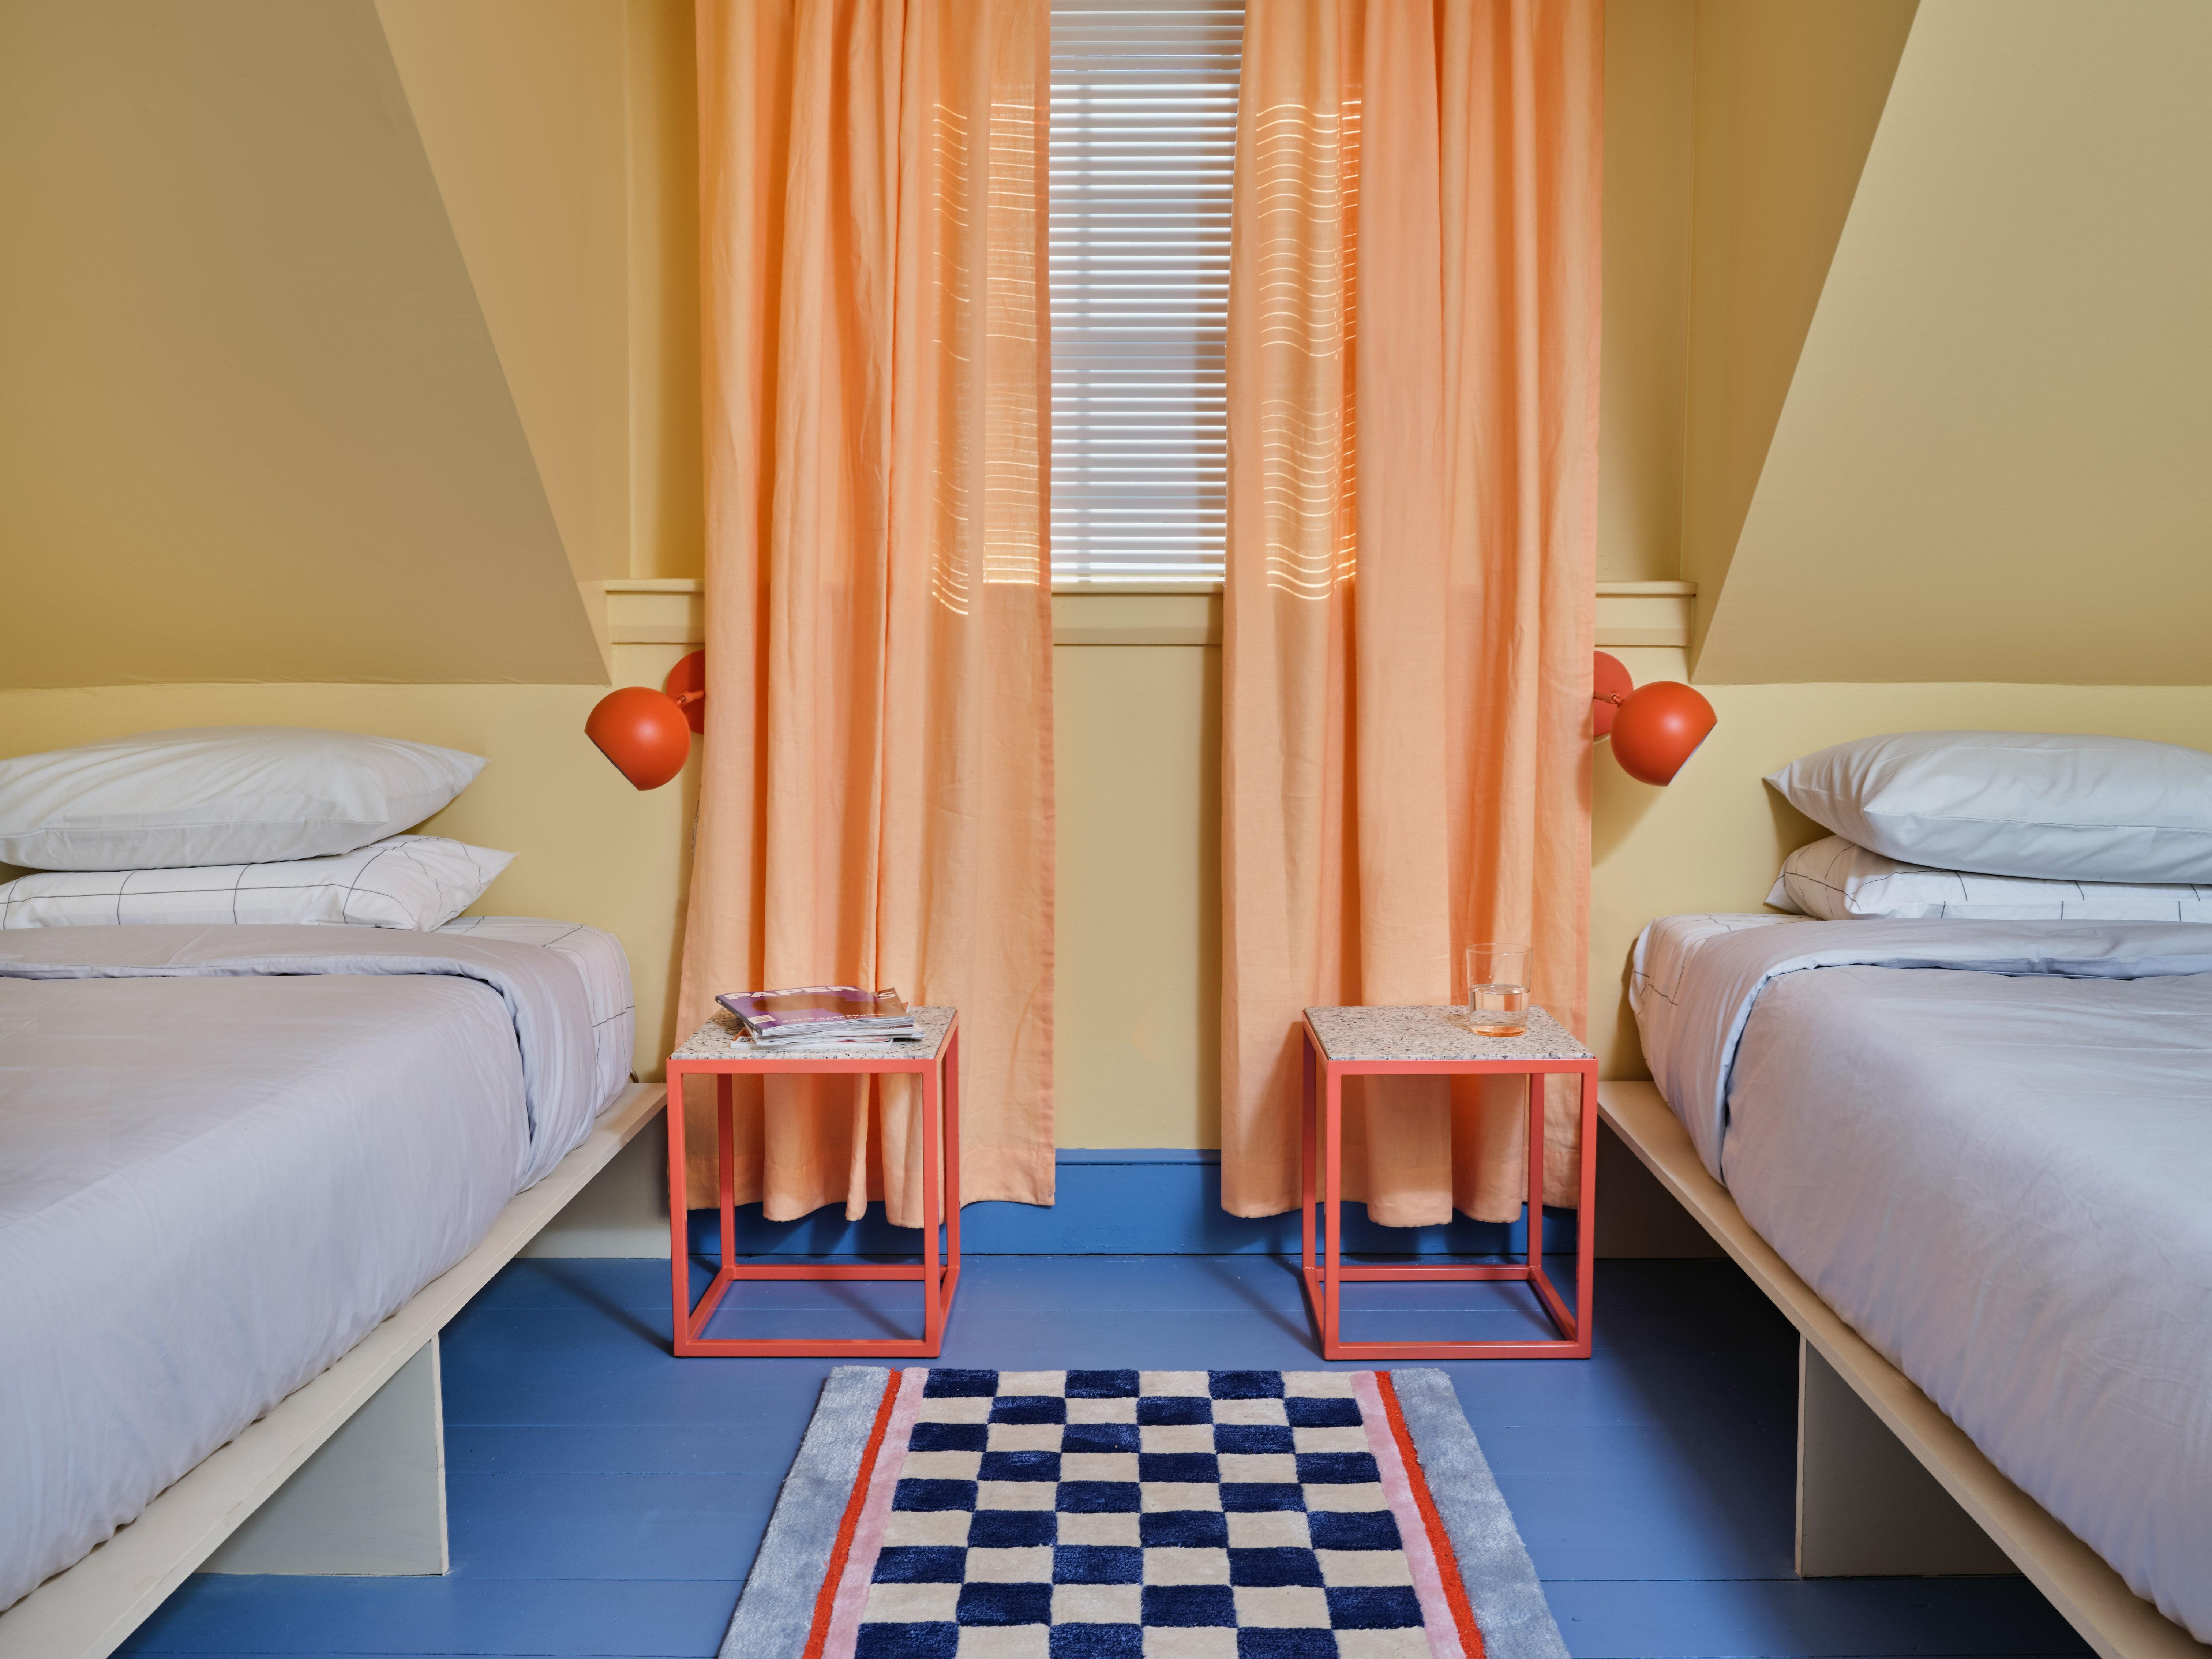 """This pale yellow guest bedroom with its bright blue floors and coral red accents is just one colorful moment in this <a href=""""https://www.architecturaldigest.com/story/this-19th-century-home-is-now-a-rainbow-hued-vacation-rental?mbid=synd_yahoo_rss"""" rel=""""nofollow noopener"""" target=""""_blank"""" data-ylk=""""slk:Maine home"""" class=""""link rapid-noclick-resp"""">Maine home</a>—the brainchild of <a href=""""https://www.architecturaldigest.com/story/pieces-unapologetically-playful-brooklyn-apartment?mbid=synd_yahoo_rss"""" rel=""""nofollow noopener"""" target=""""_blank"""" data-ylk=""""slk:Jenny Kaplan"""" class=""""link rapid-noclick-resp"""">Jenny Kaplan</a>, Chris Corrado, and Taisha Coombs, founders of the Brooklyn-based creative agency <a href=""""http://www.anaestheticpursuit.com/"""" rel=""""nofollow noopener"""" target=""""_blank"""" data-ylk=""""slk:An Aesthetic Pursuit"""" class=""""link rapid-noclick-resp"""">An Aesthetic Pursuit</a>, and its sister venture, the home furnishings line <a href=""""https://pieceshome.com/"""" rel=""""nofollow noopener"""" target=""""_blank"""" data-ylk=""""slk:Pieces"""" class=""""link rapid-noclick-resp"""">Pieces</a>."""